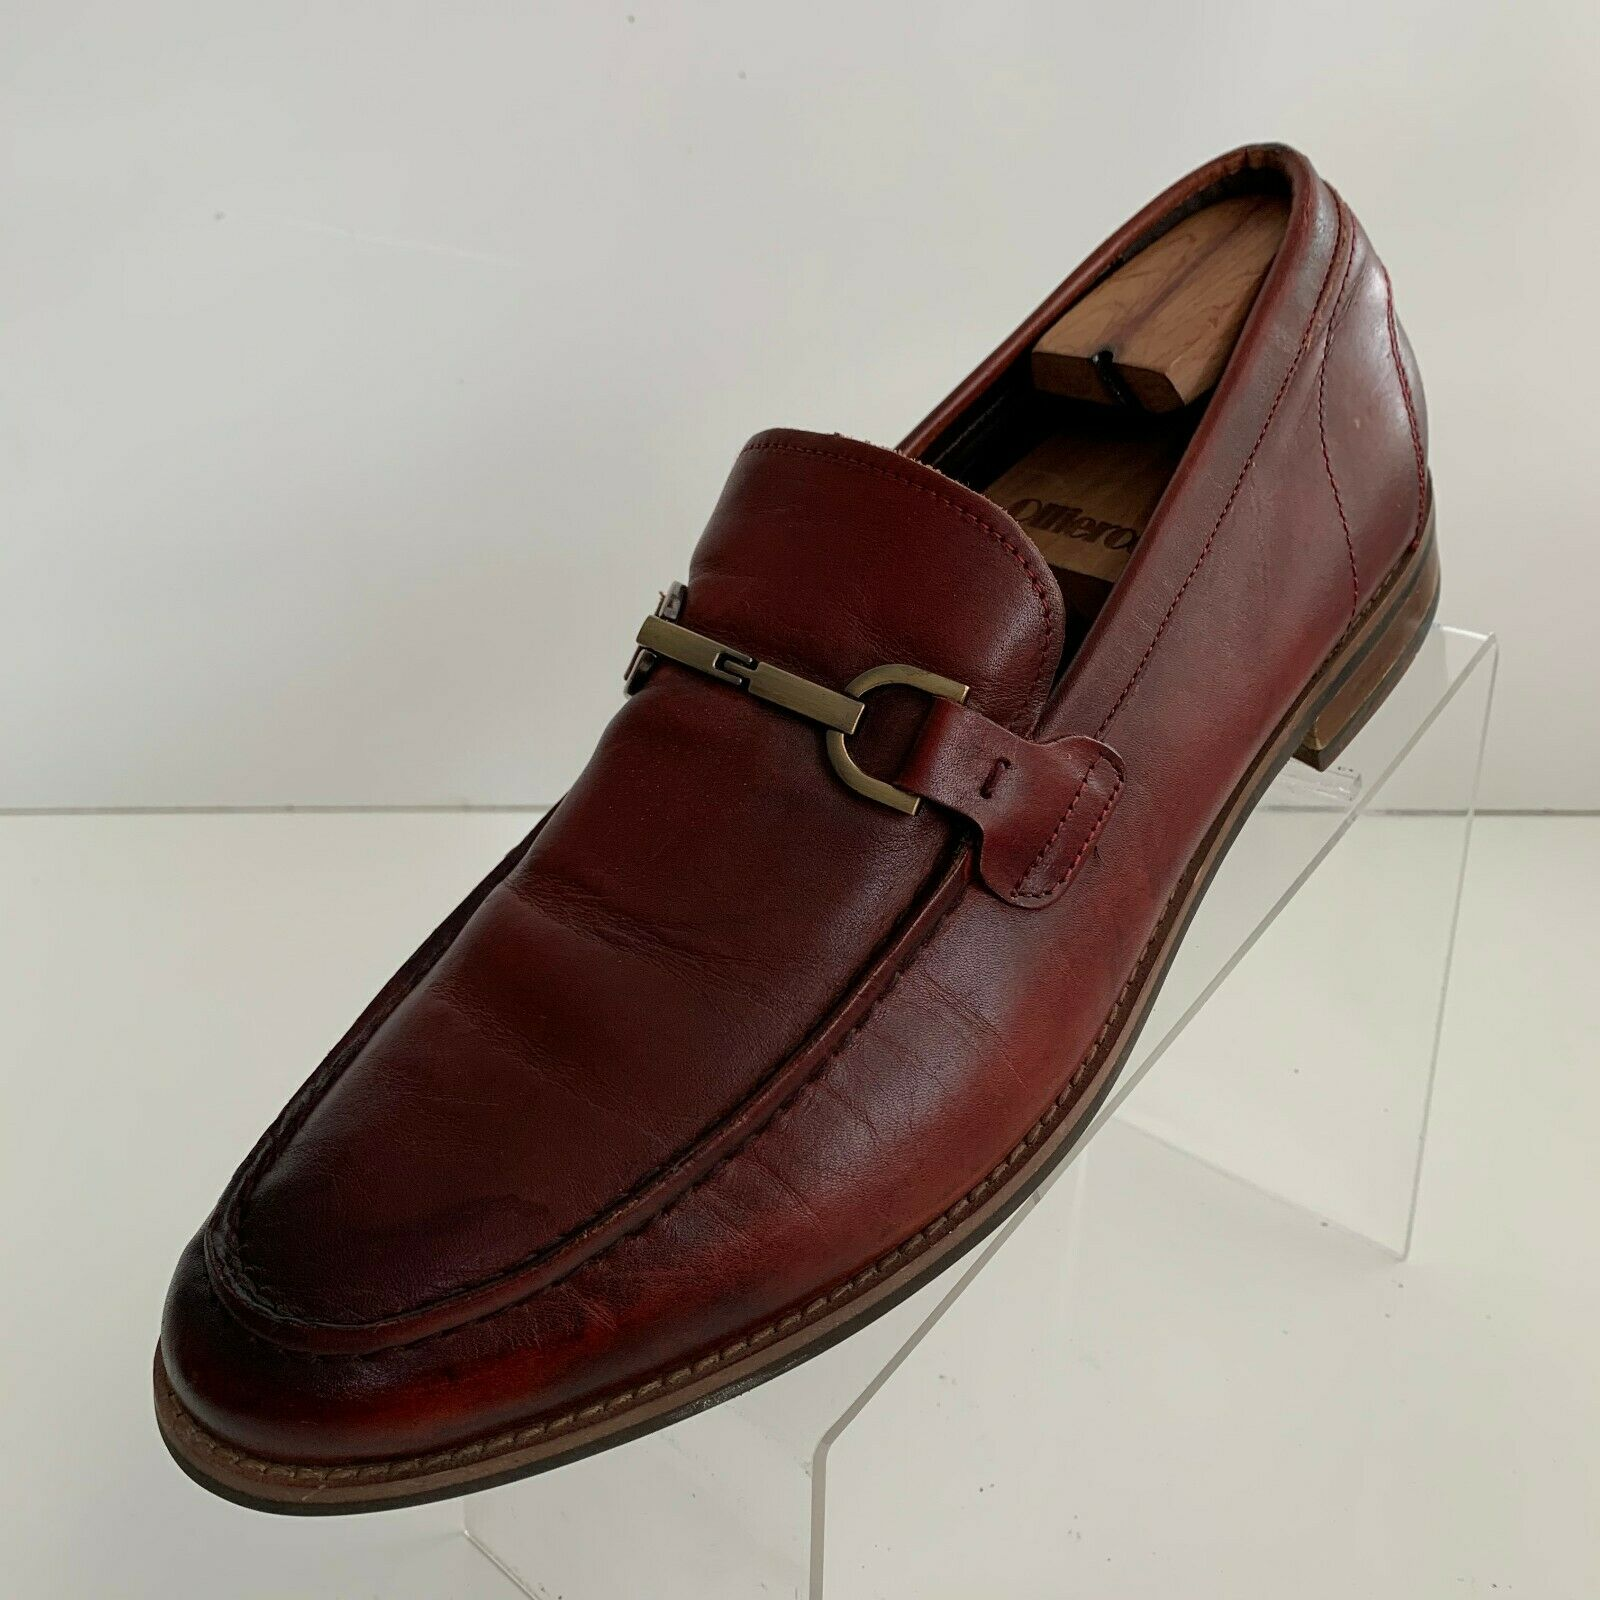 Kenneth Cole Reaction Mens Lead The Way Bit Loafers Brown Leather Shoes Size 12M